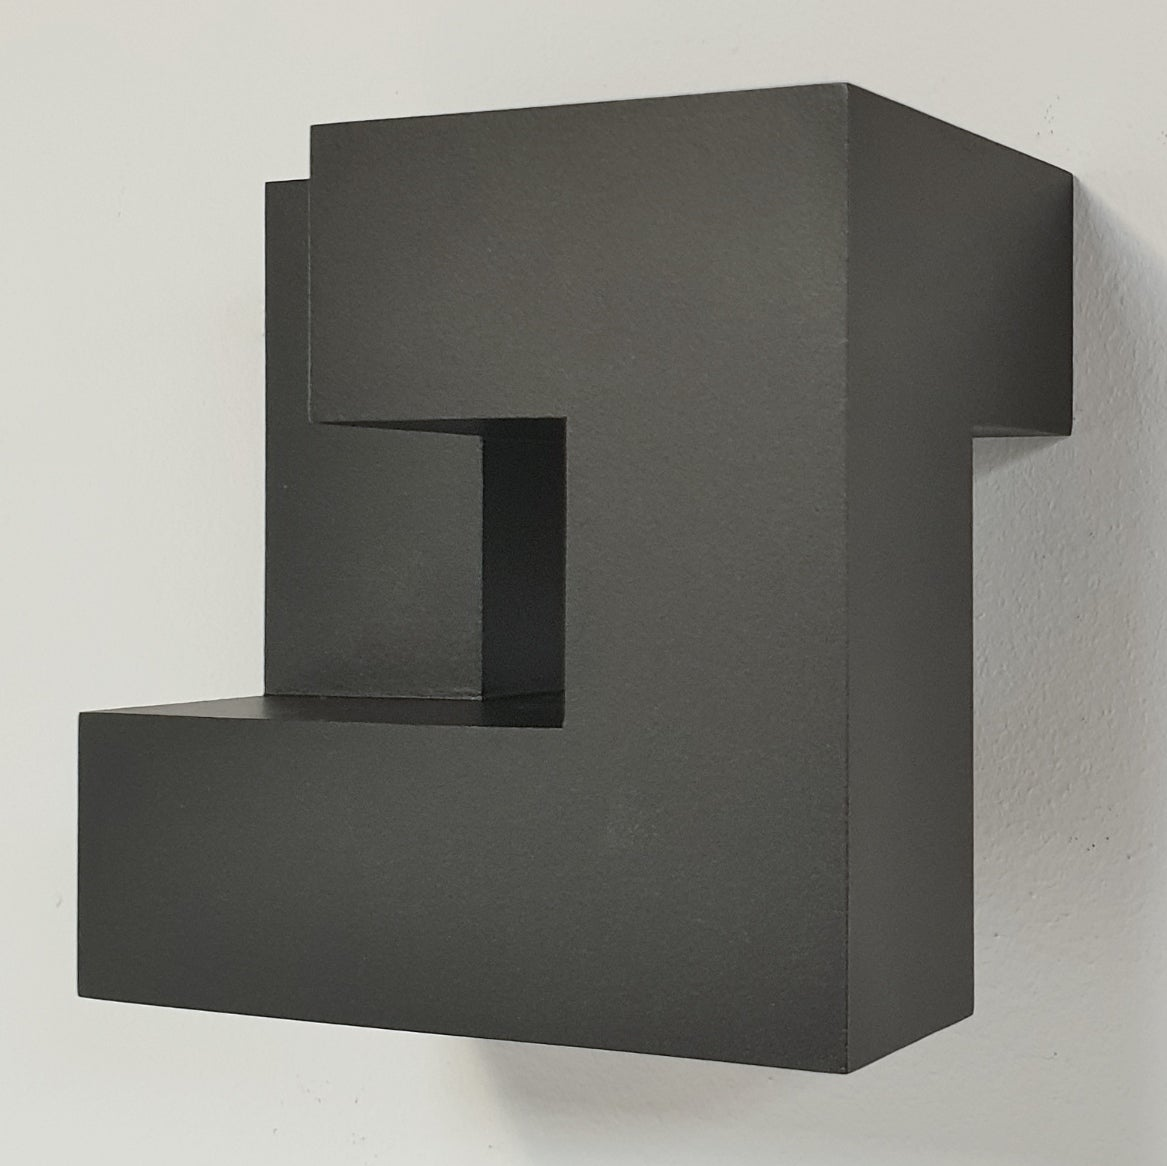 Carré architectural III no. 5/15 - contemporary modern abstract wall sculpture